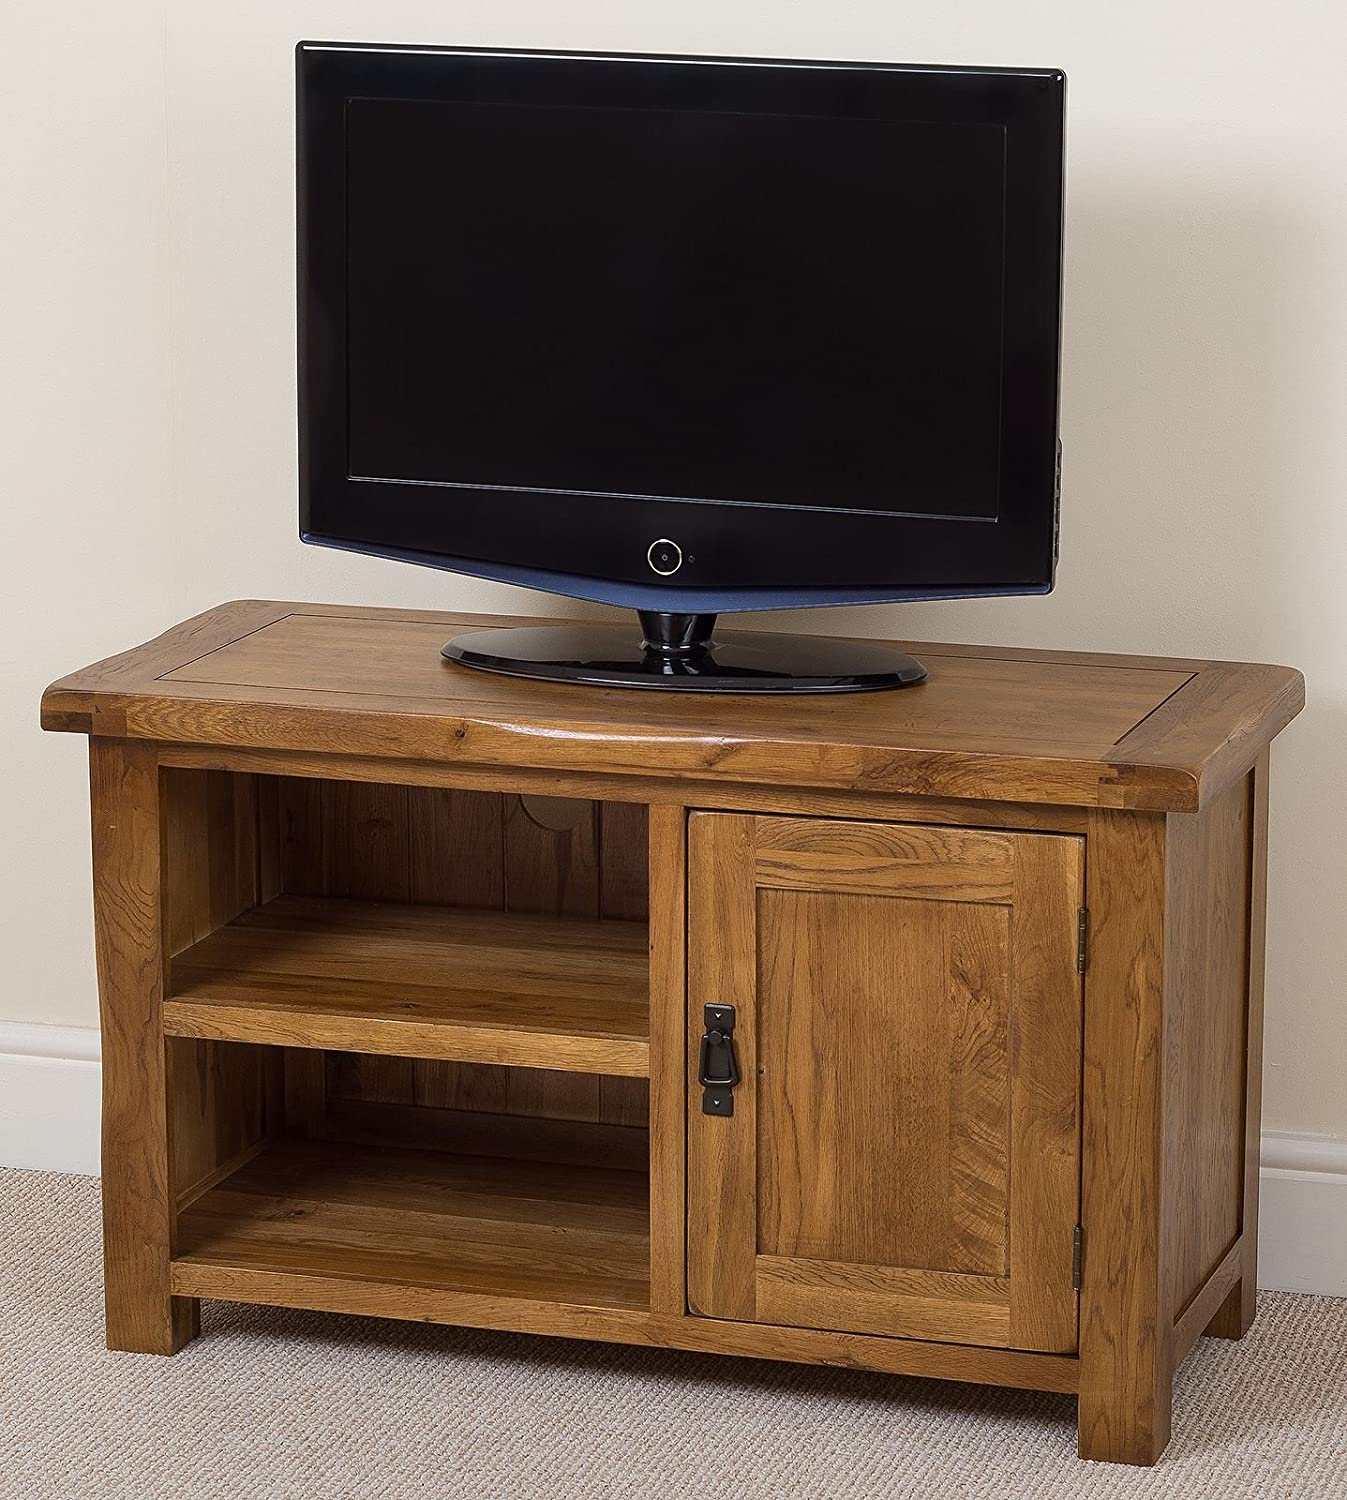 Charming Cotswold Rustic Solid Oak Small TV/DVD Stand / Living Room Furniture, (100  X 42 X 60.5 Cm): Amazon.co.uk: Kitchen U0026 Home Part 30